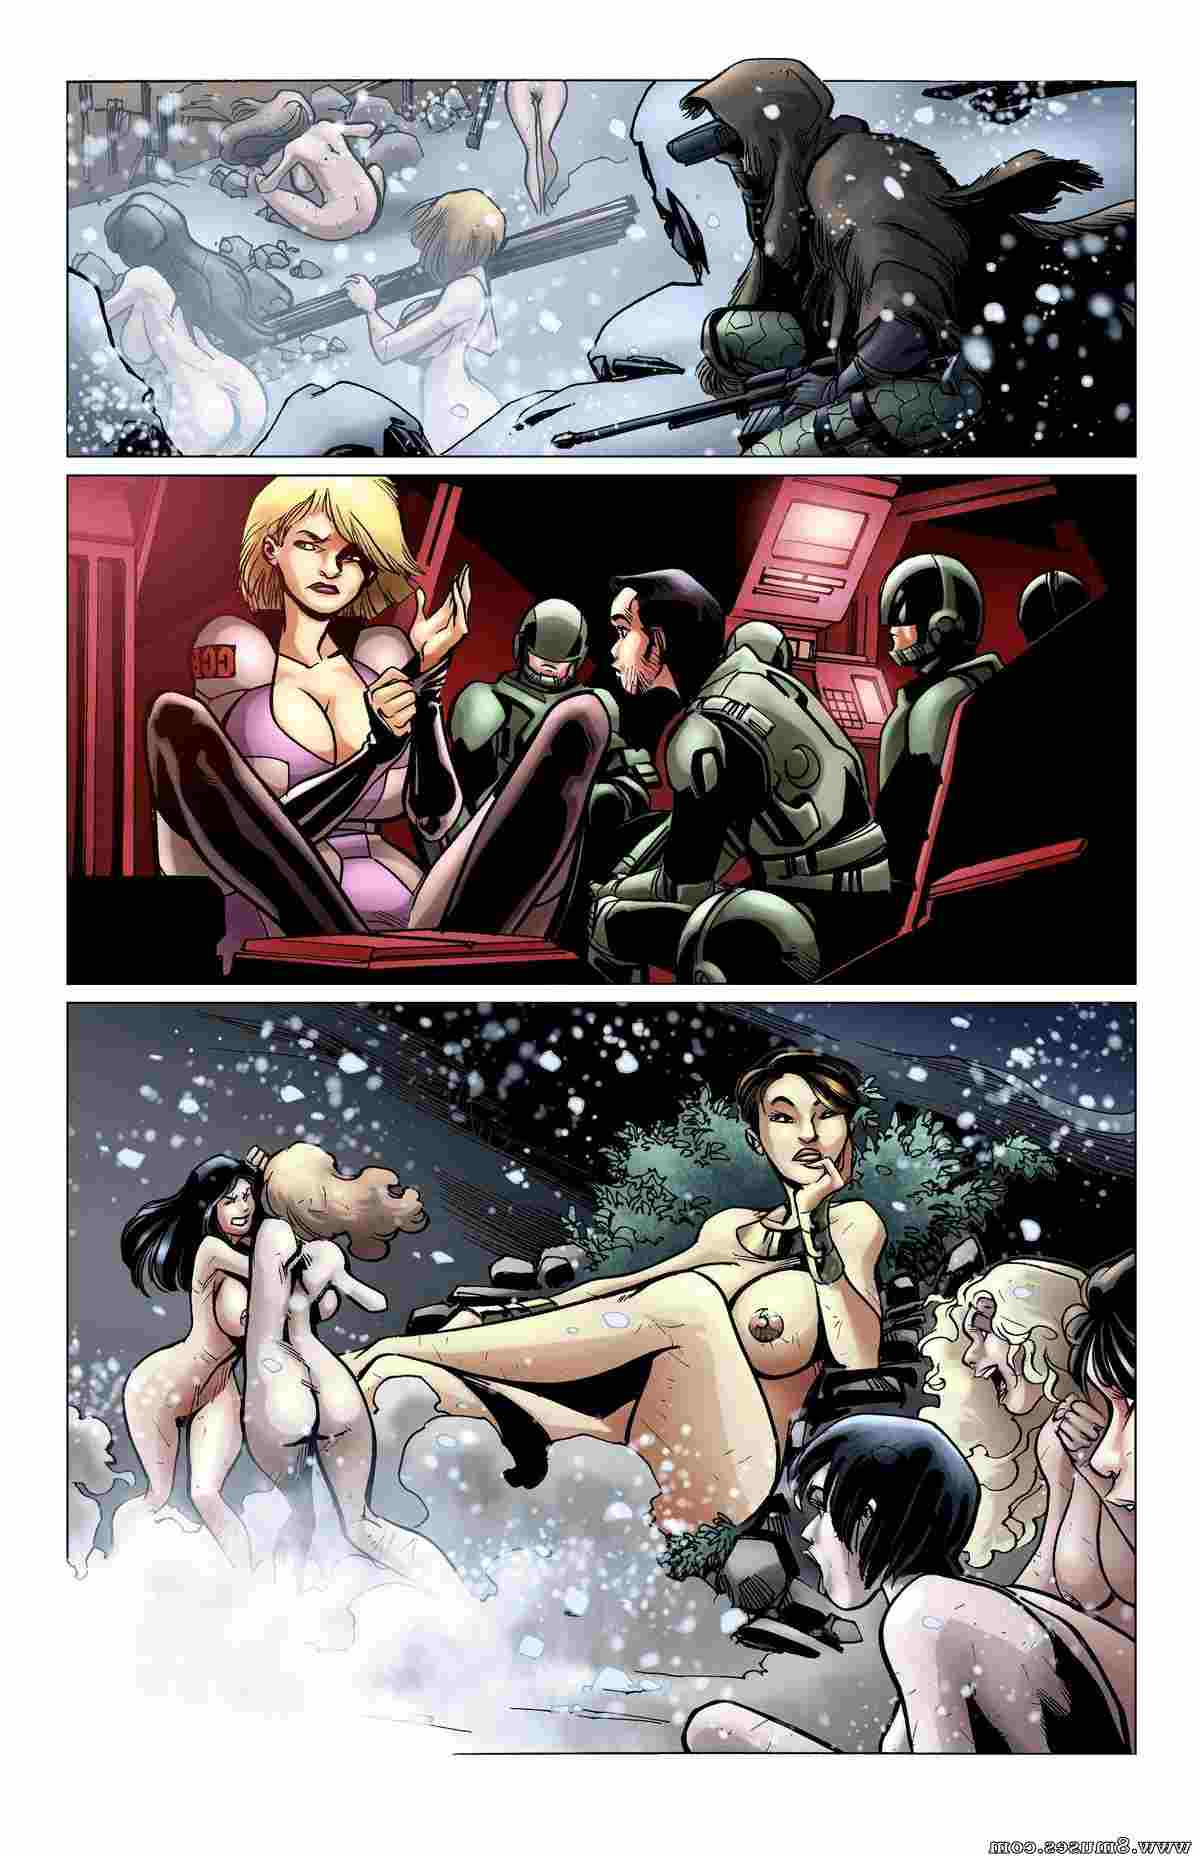 Giantess-Club-Comics/Giantess-Containment-Bureau Giantess_Containment_Bureau__8muses_-_Sex_and_Porn_Comics_6.jpg